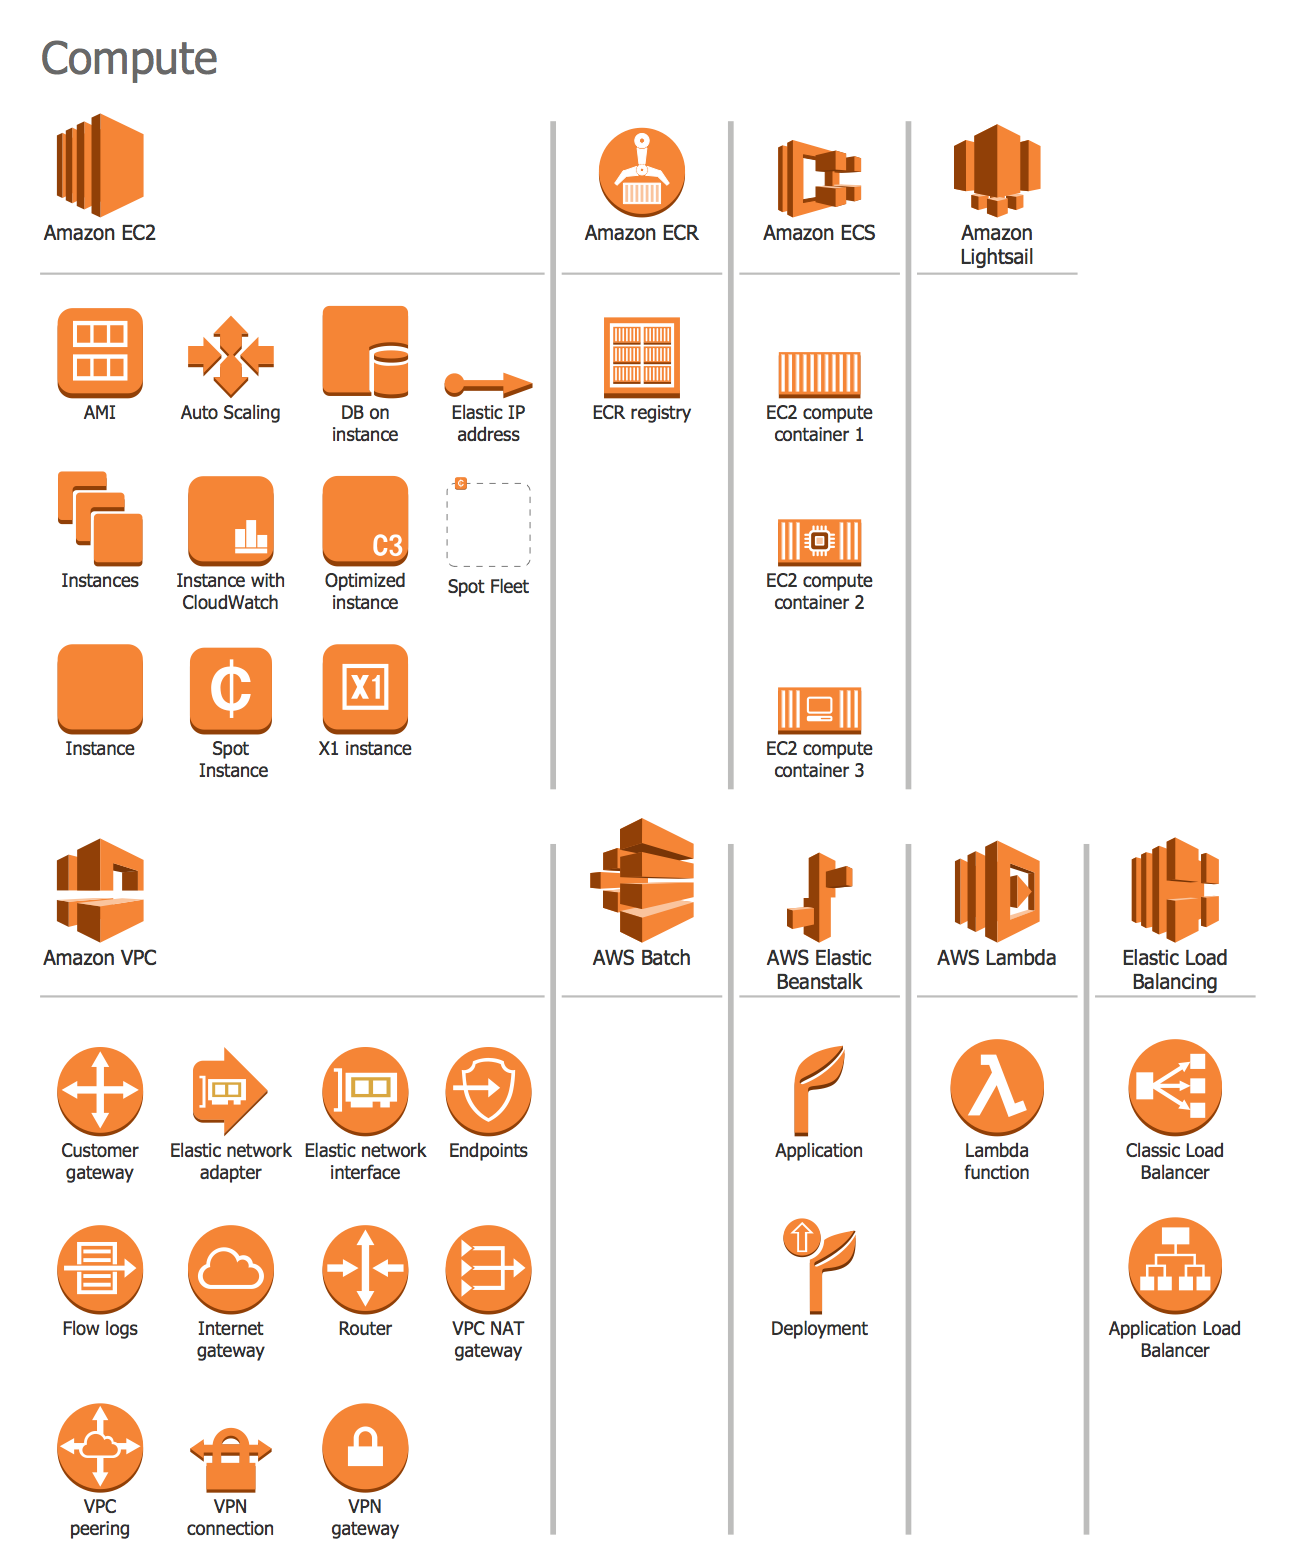 computer and networks aws architecture diagrams design elementscomputer and networks aws architecture diagrams design elements aws compute